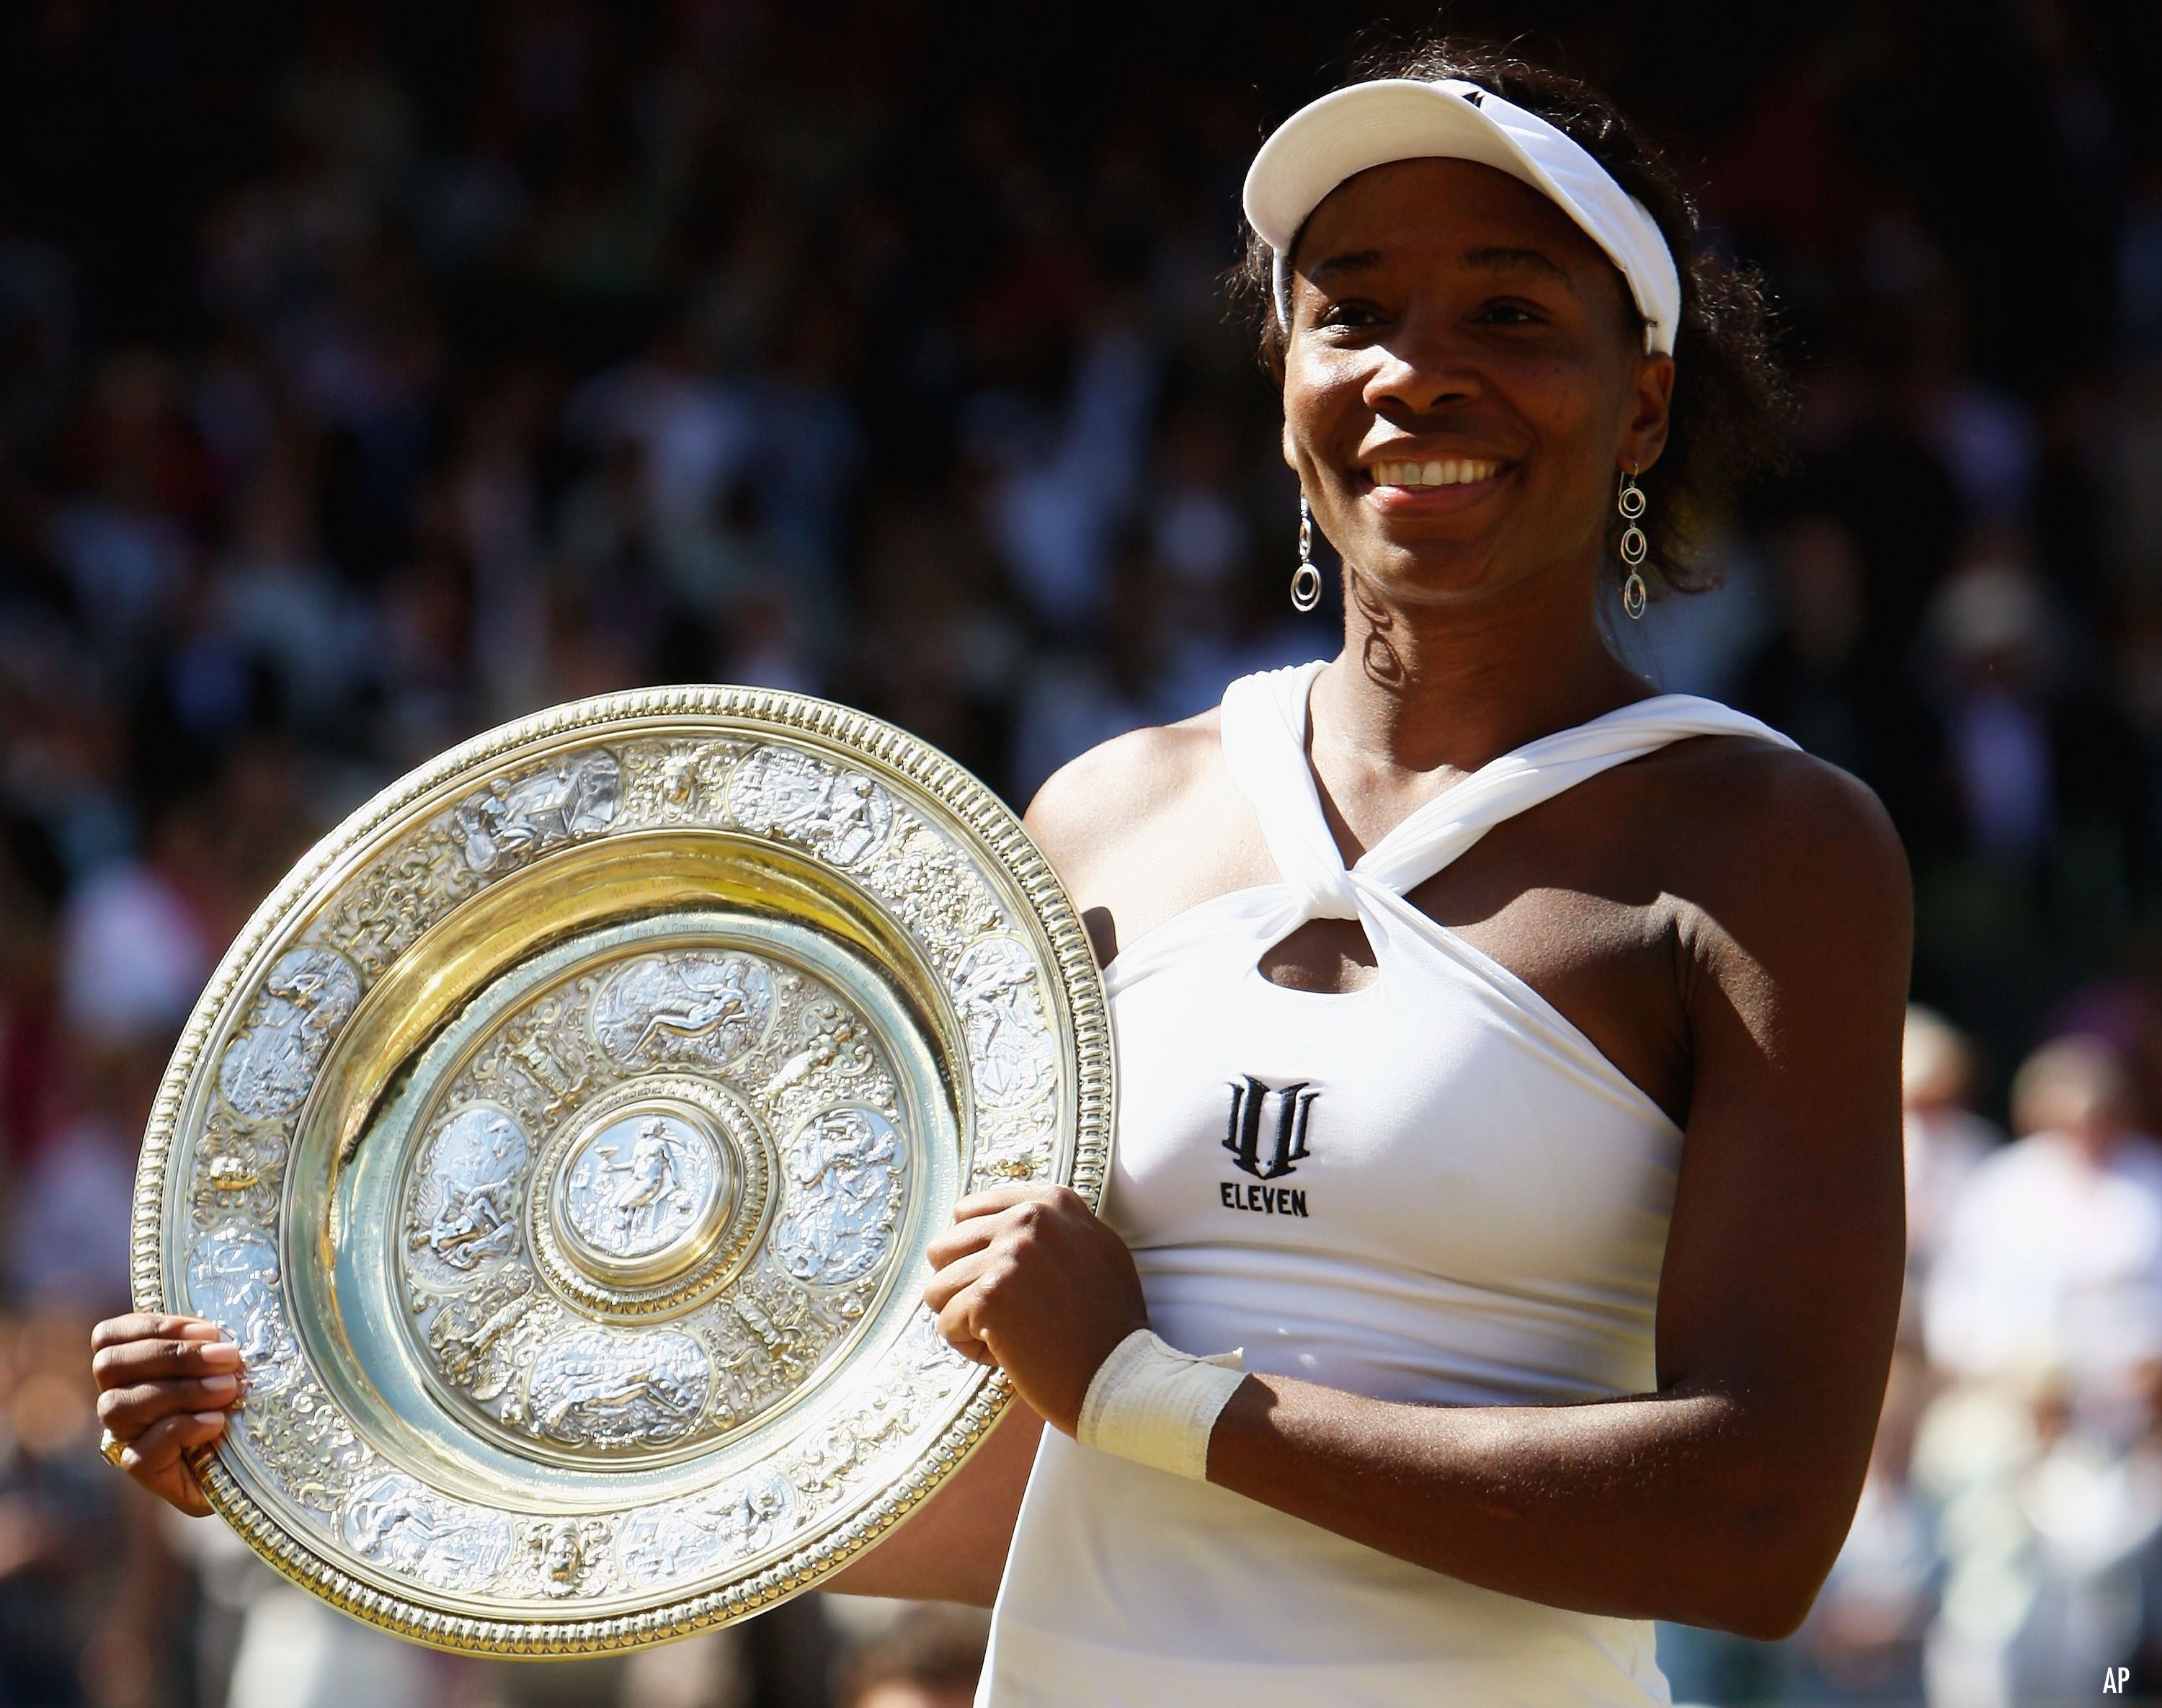 Venus Williams 7 Grand Slam singles titles